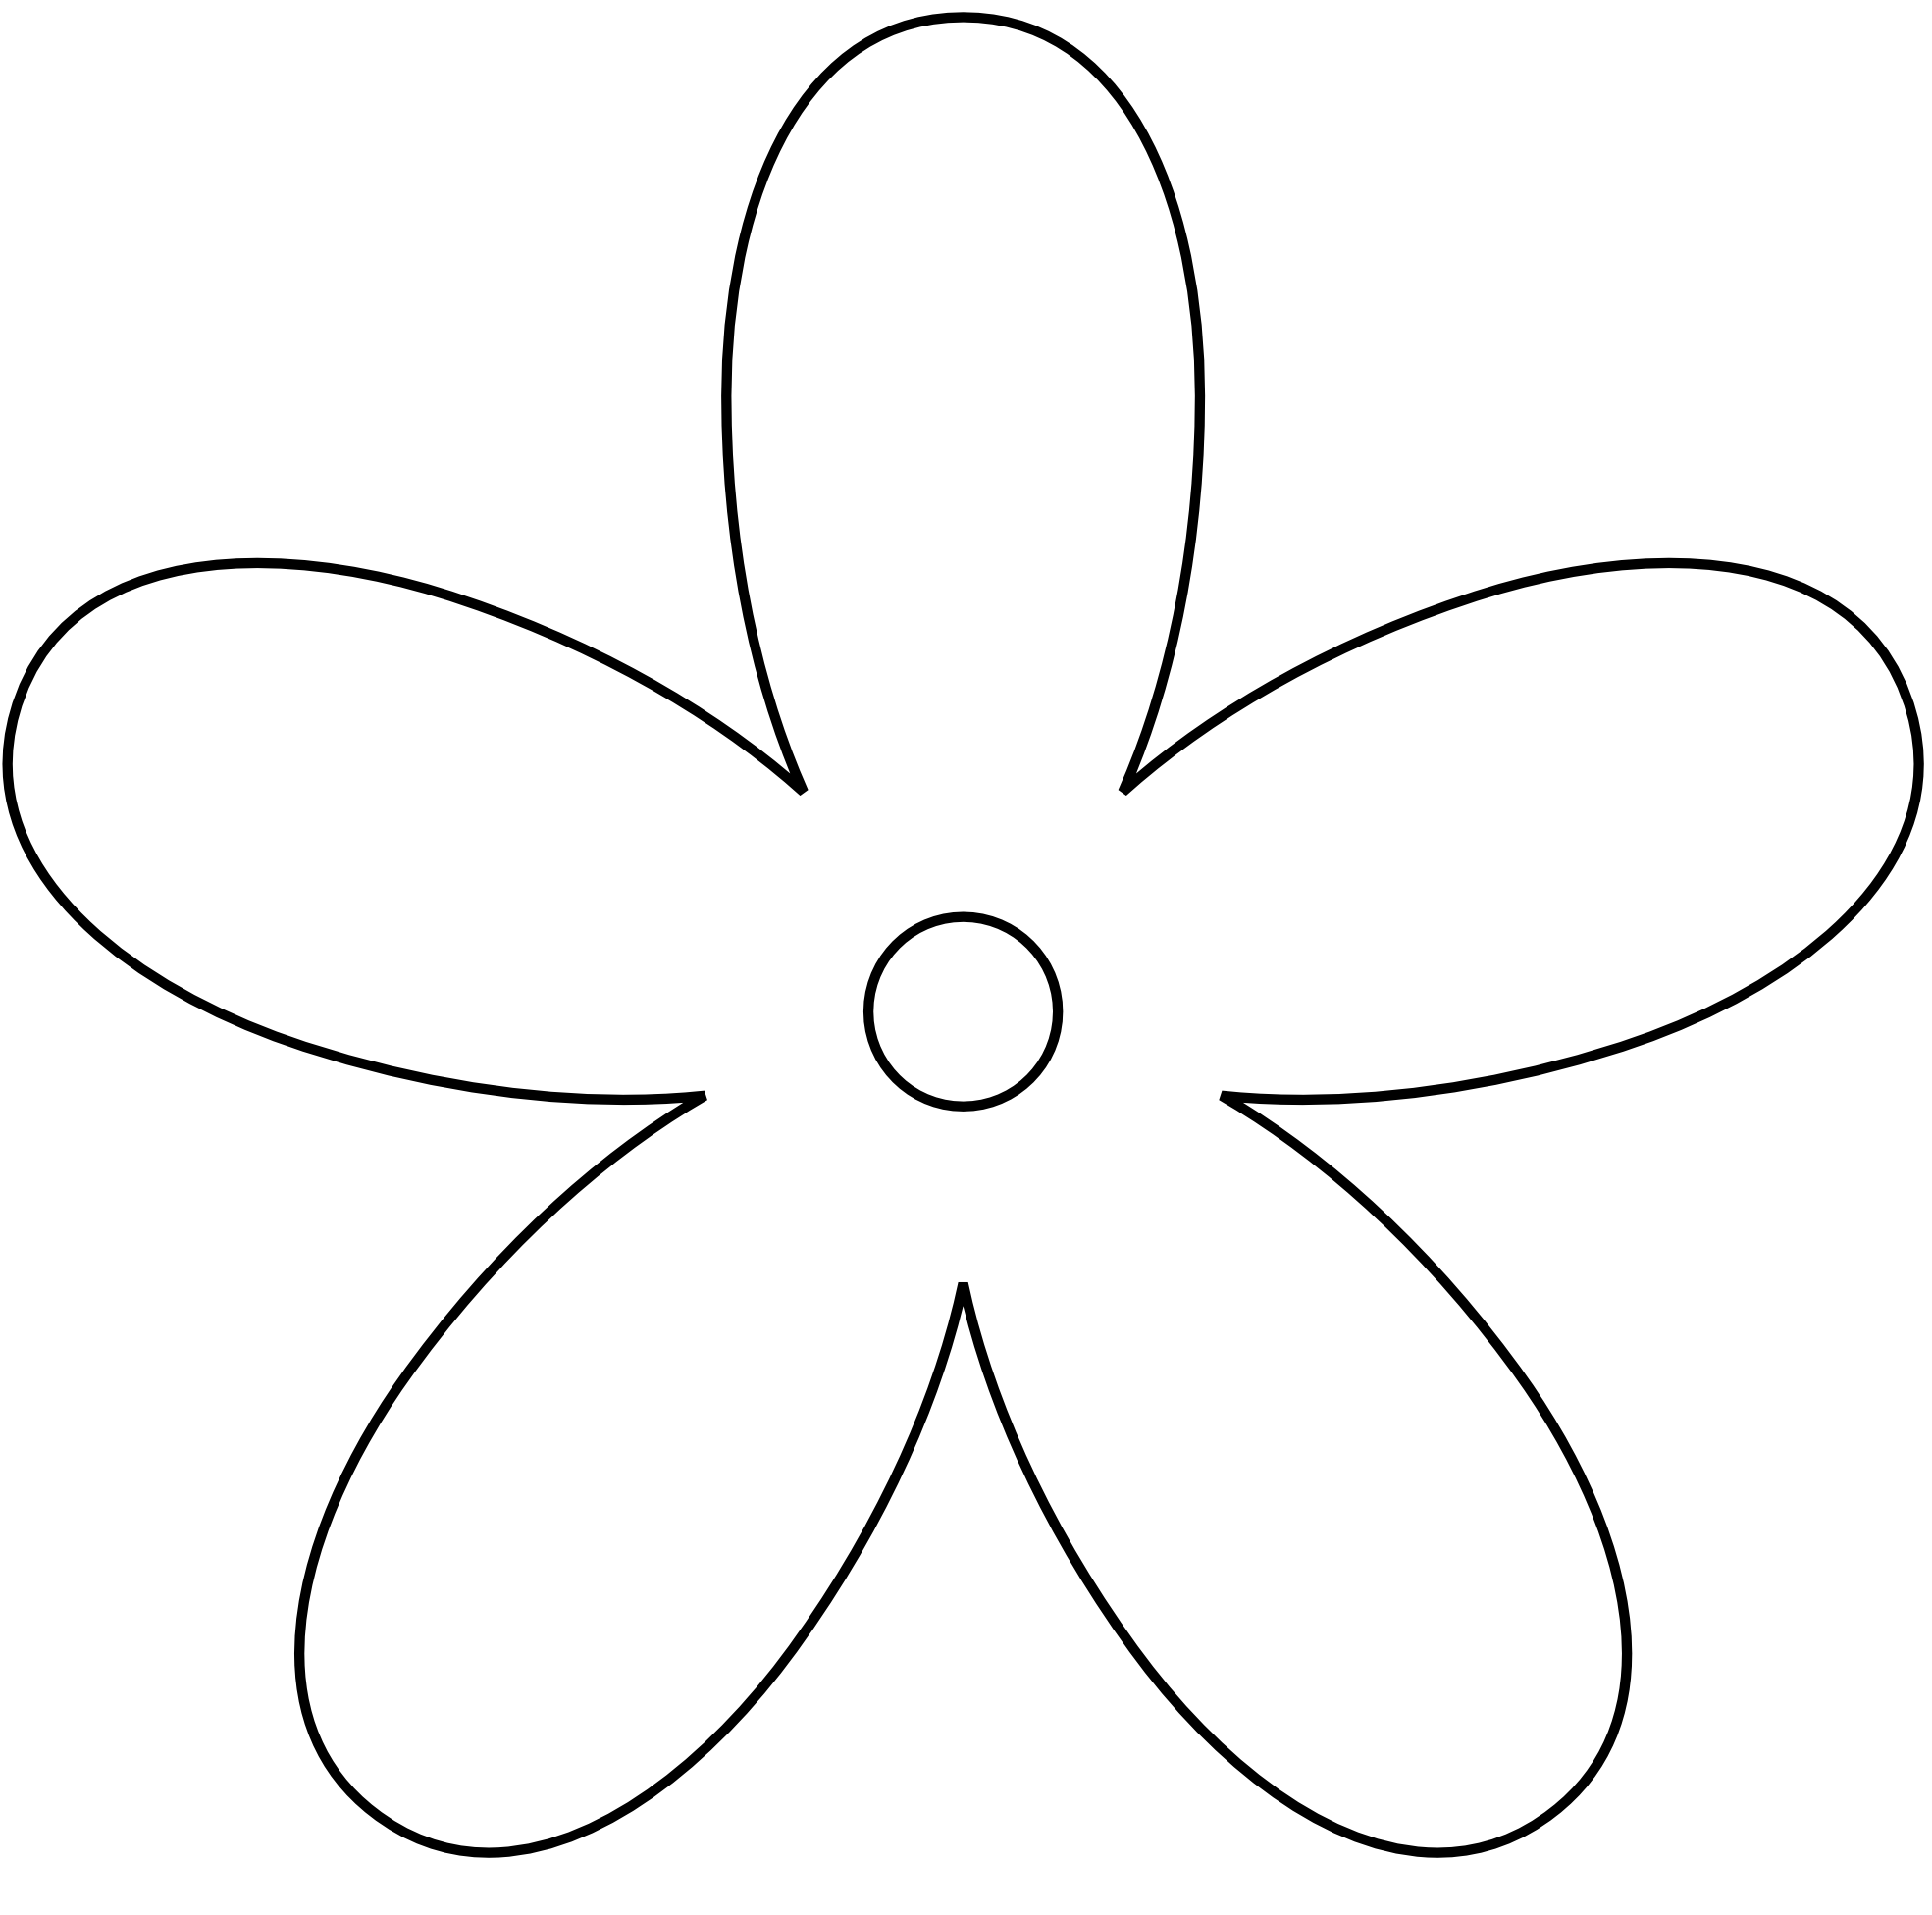 Simple Black And White Flower Clipart.